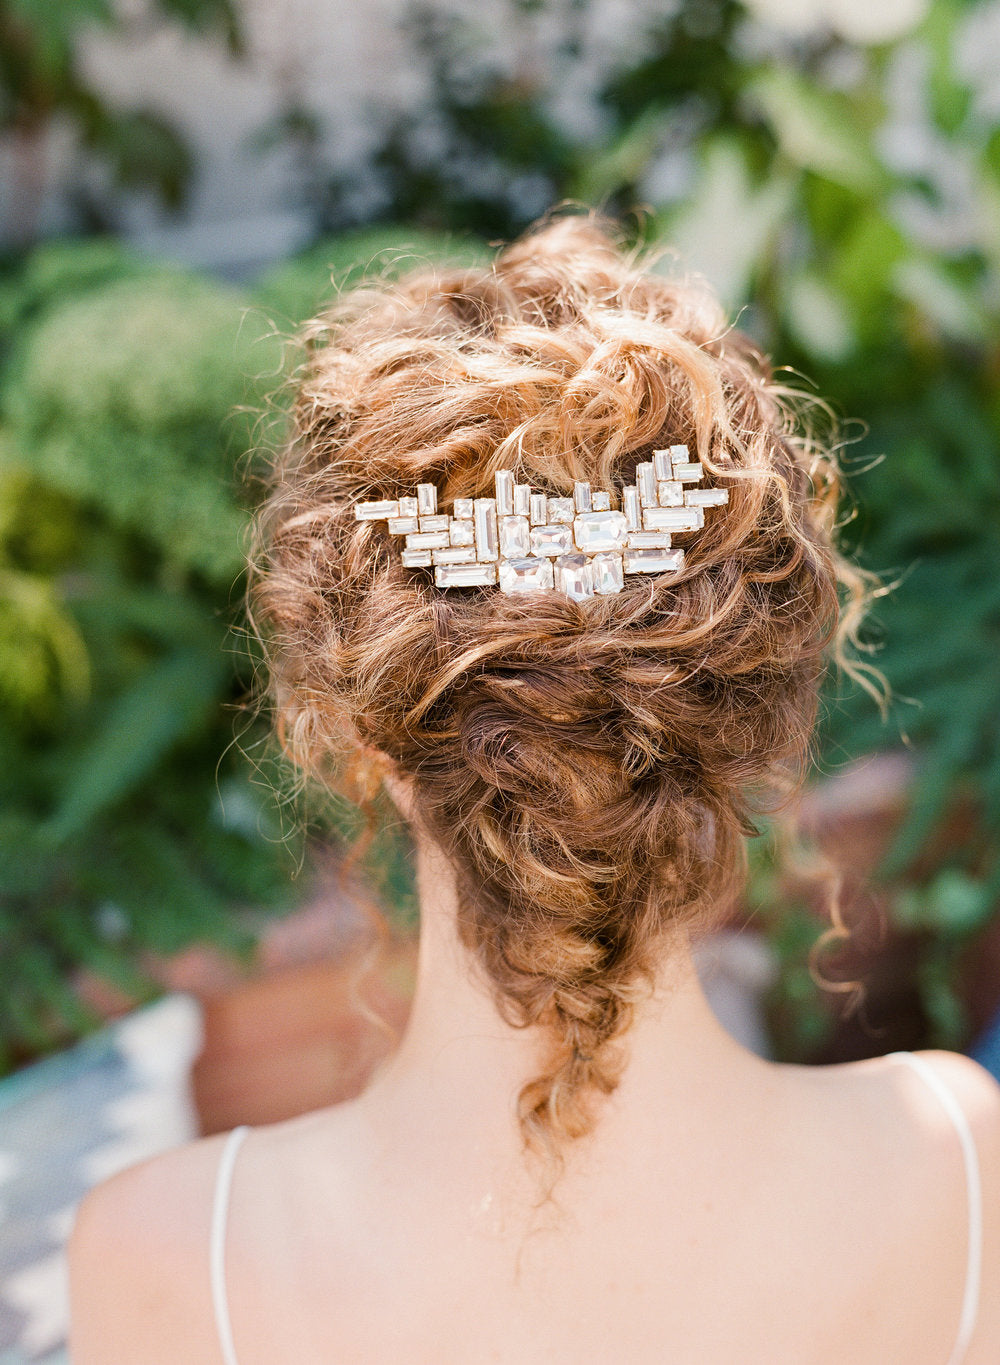 Lorelei-Hair Adornments-Hushed Commotion